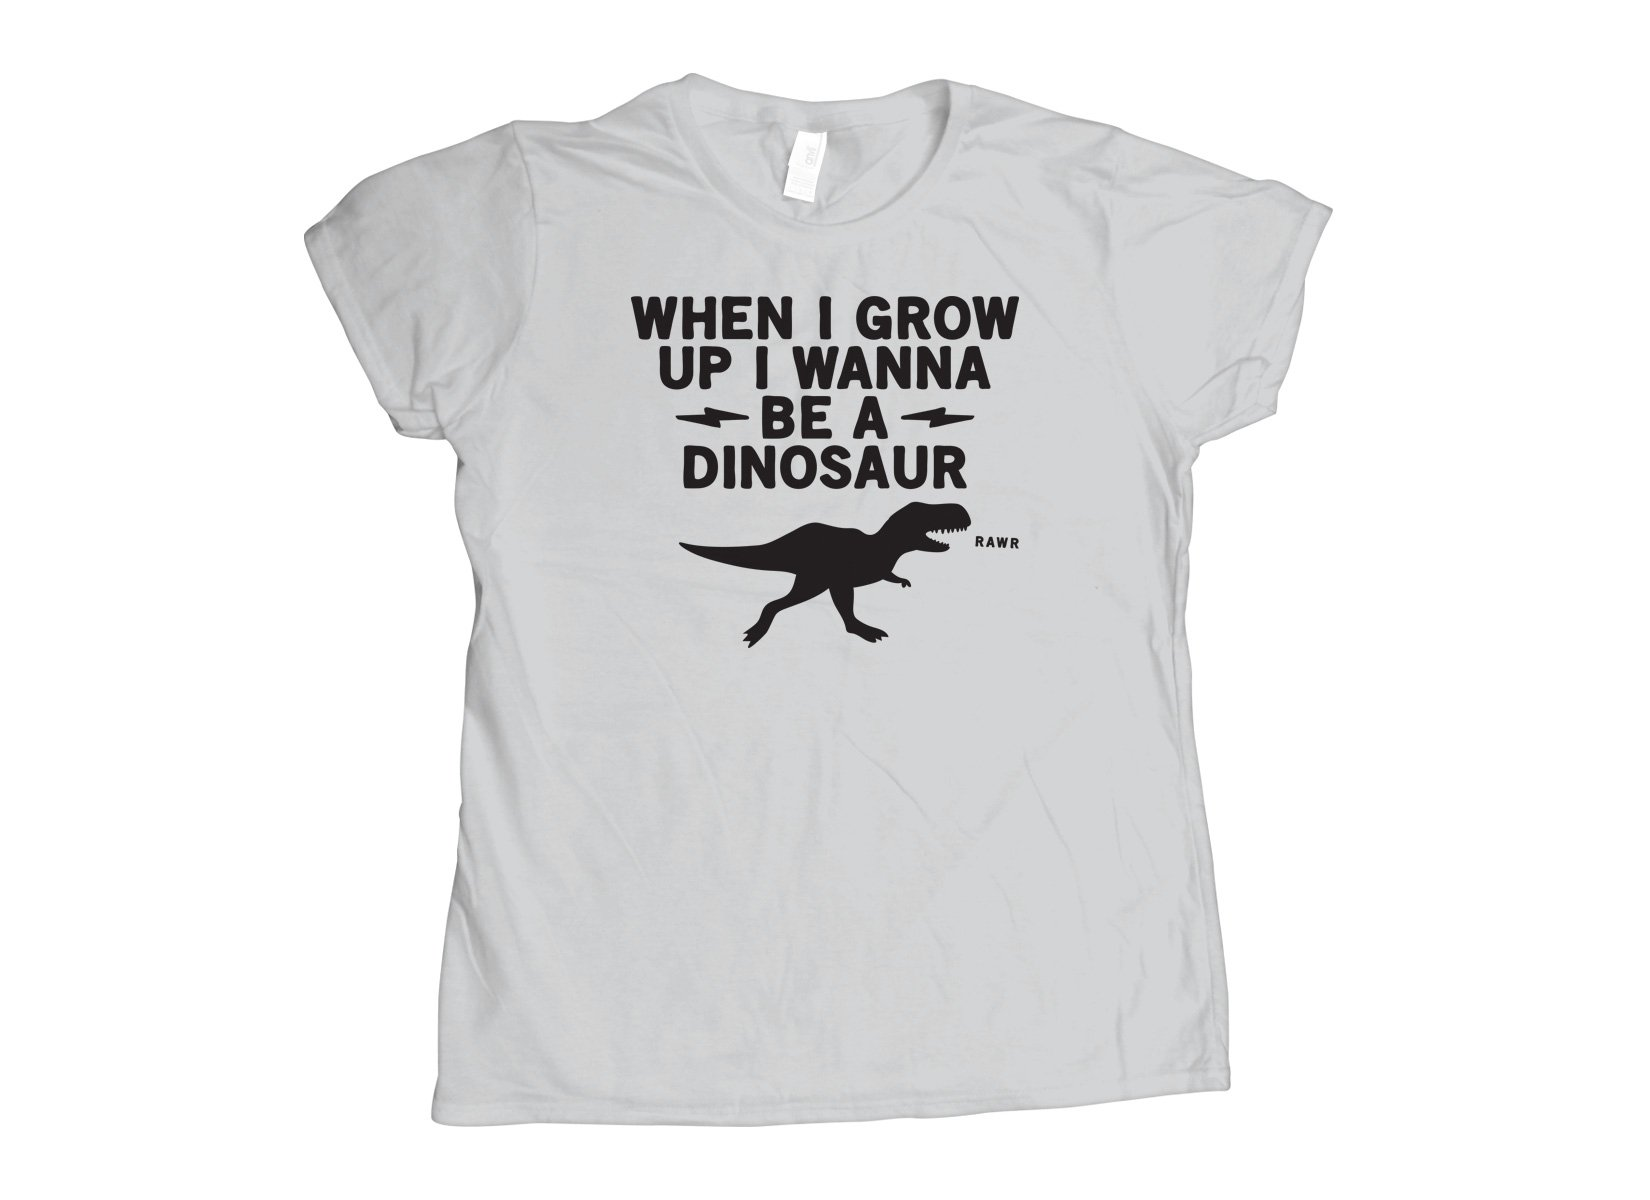 When I Grow Up I Wanna Be A Dinosaur on Womens T-Shirt